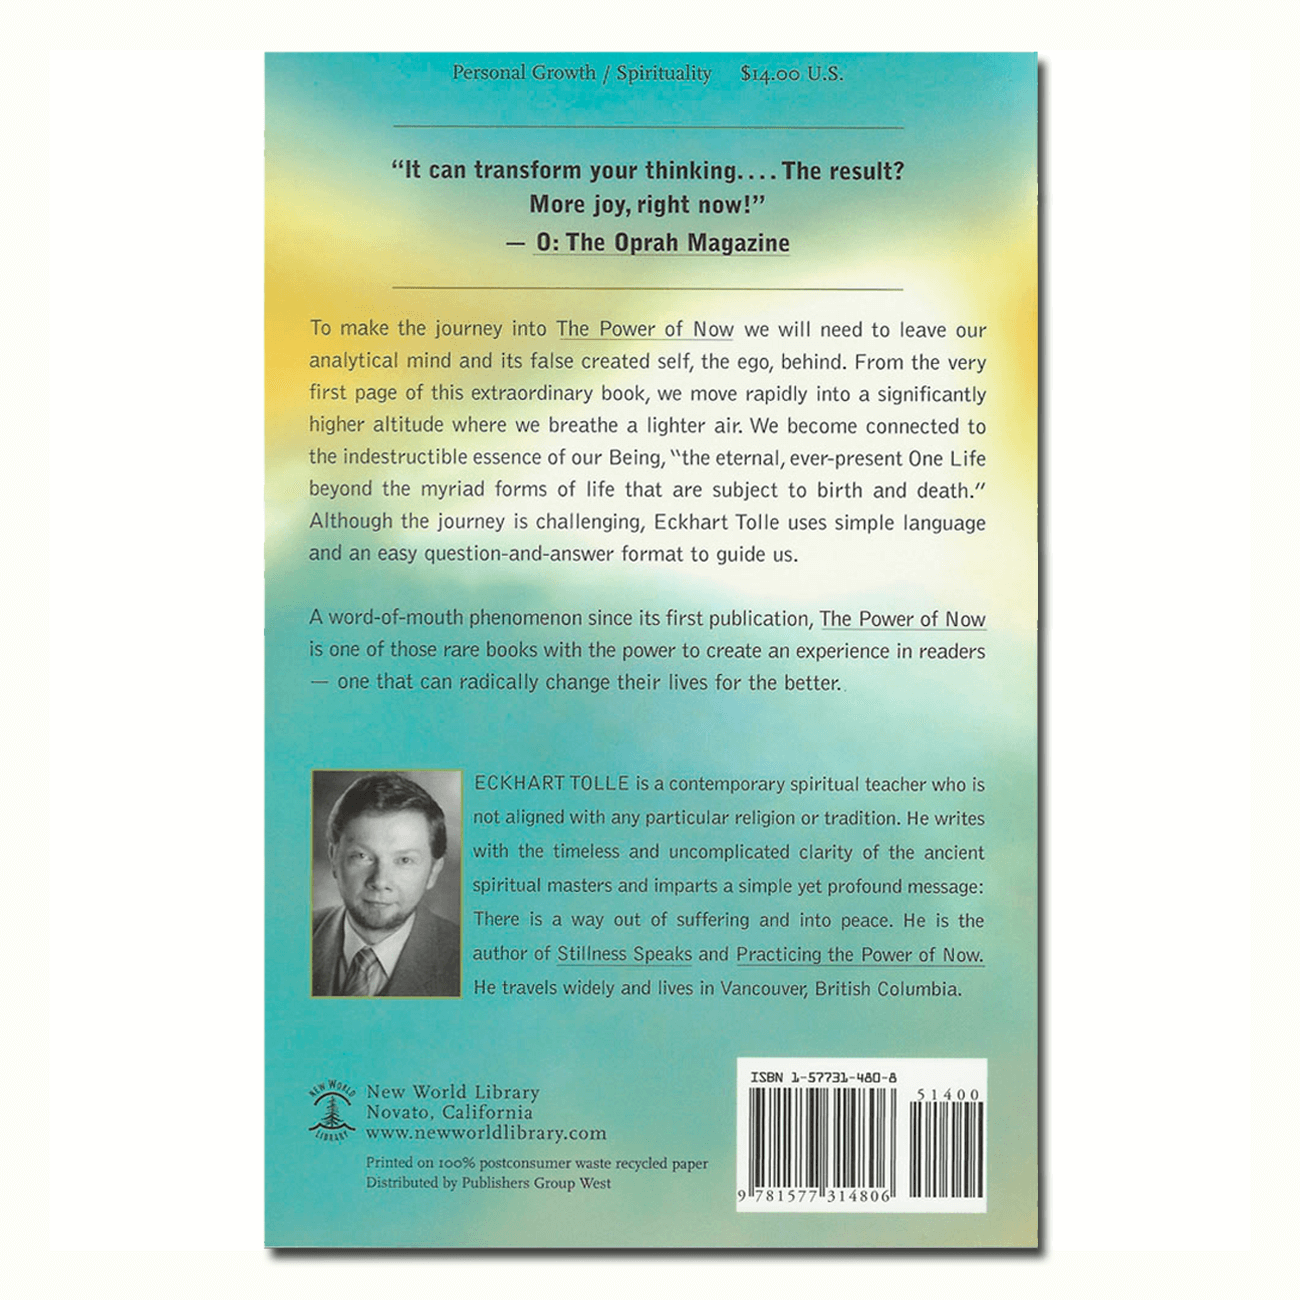 eckhart tolle the power of now pdf